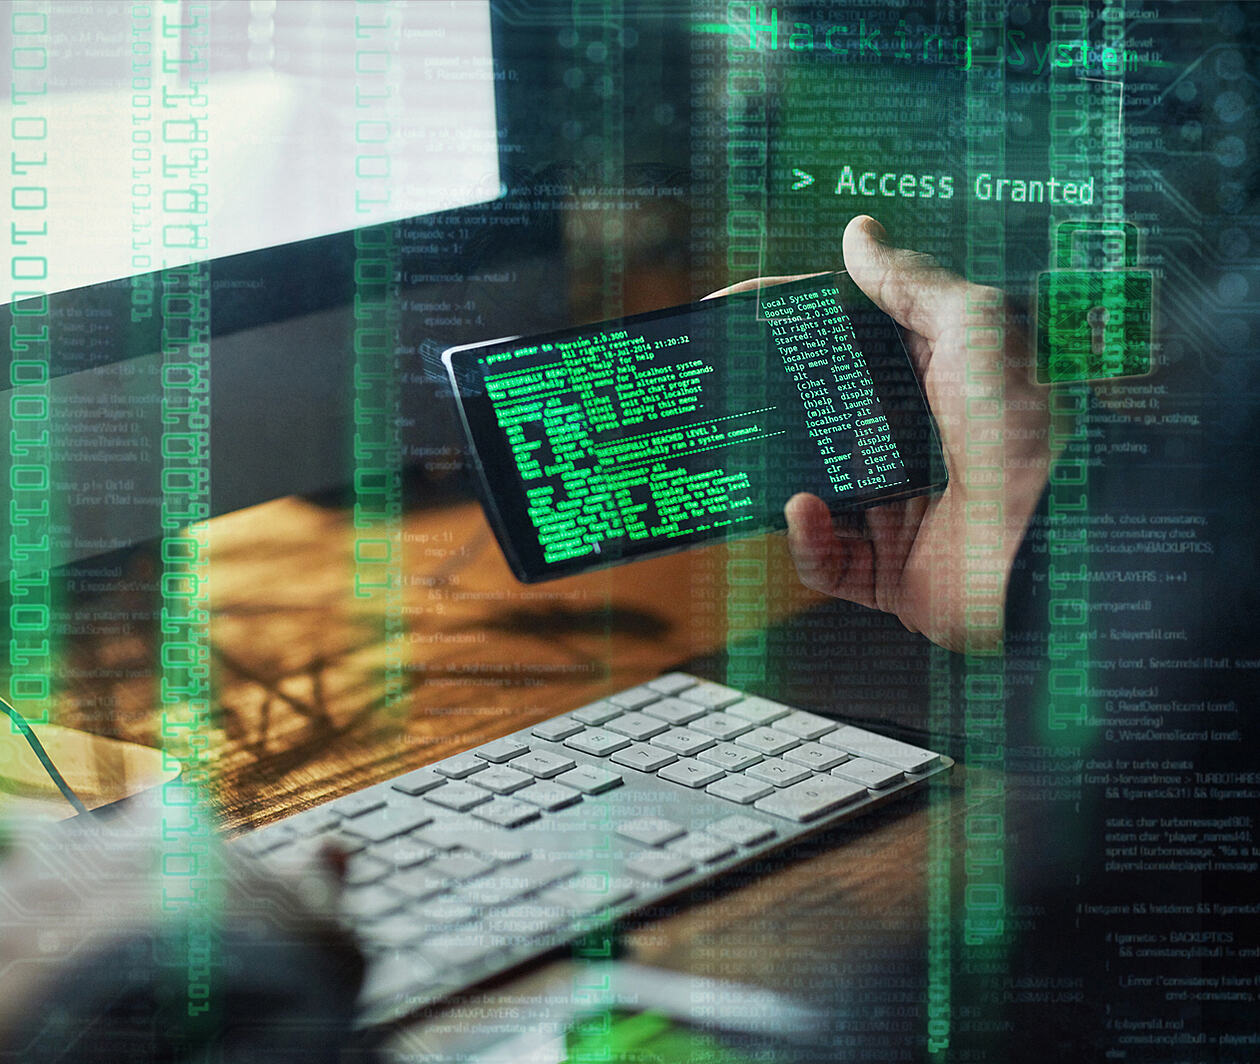 Cyber Security Foundations: Common Malware Attacks and Defense Strategies